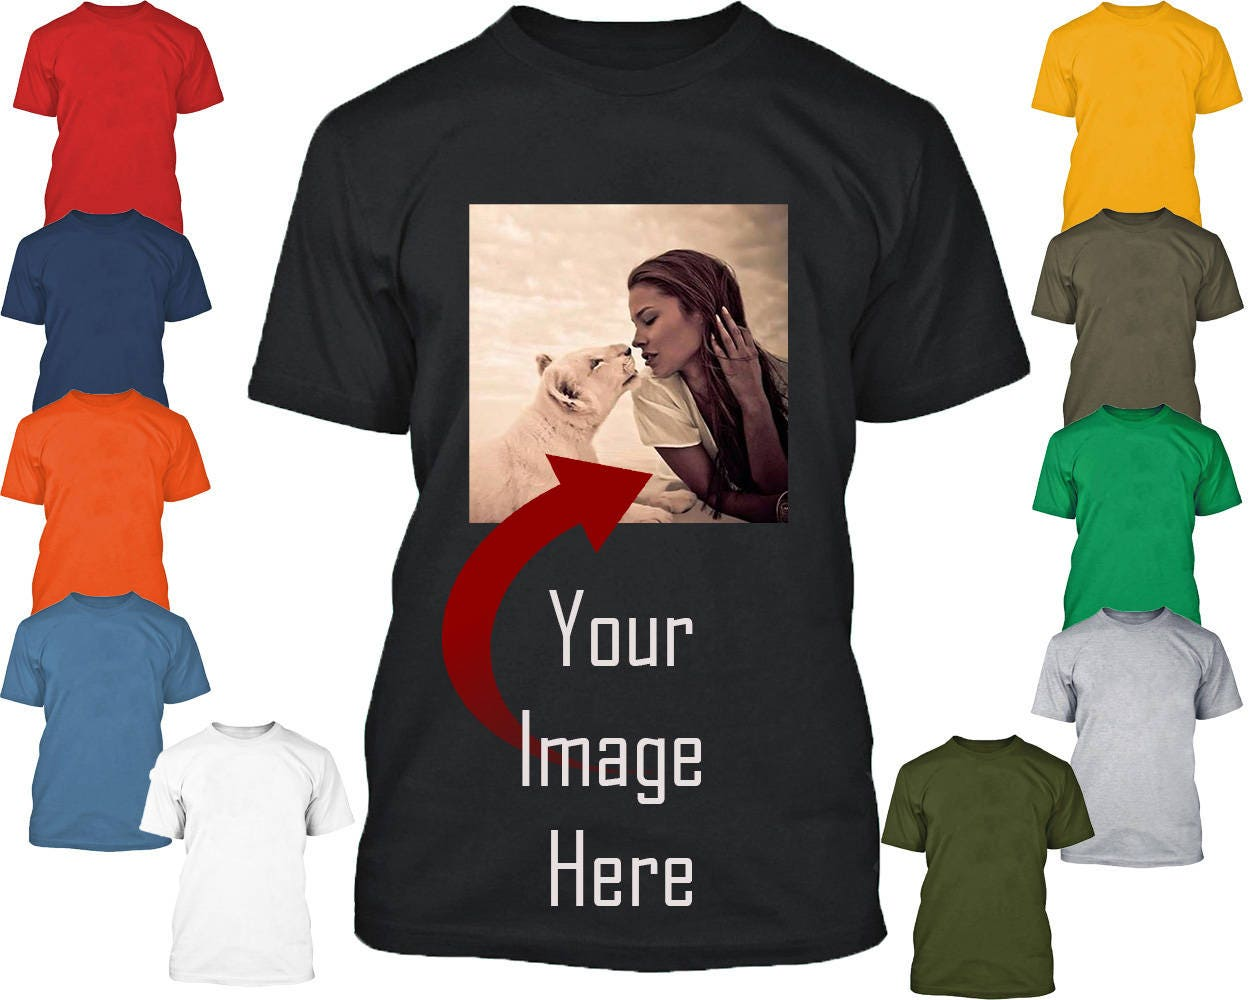 Personal Custom Tshirt Create Your Text Or Logo Make Your Own